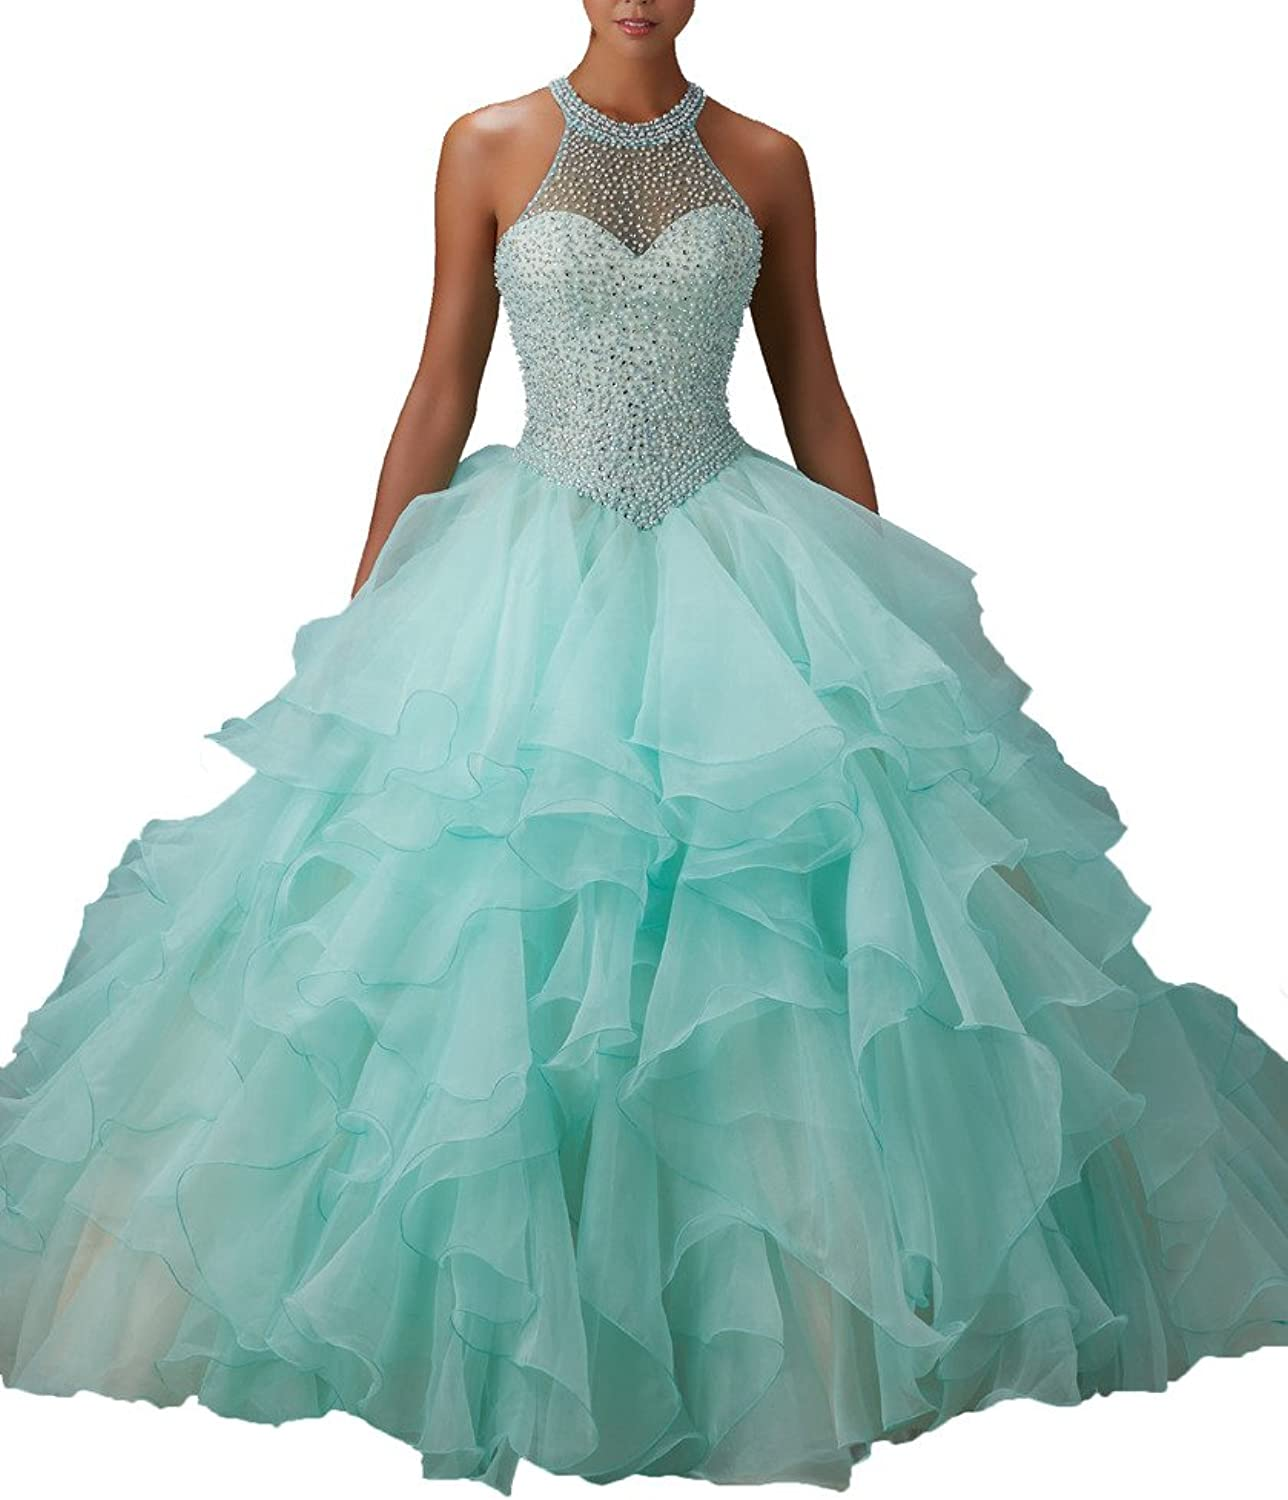 HSDJ Women's ONeck Beaded Hollow Back Sweet 15 Ball Gowns Quinceanera Dresses